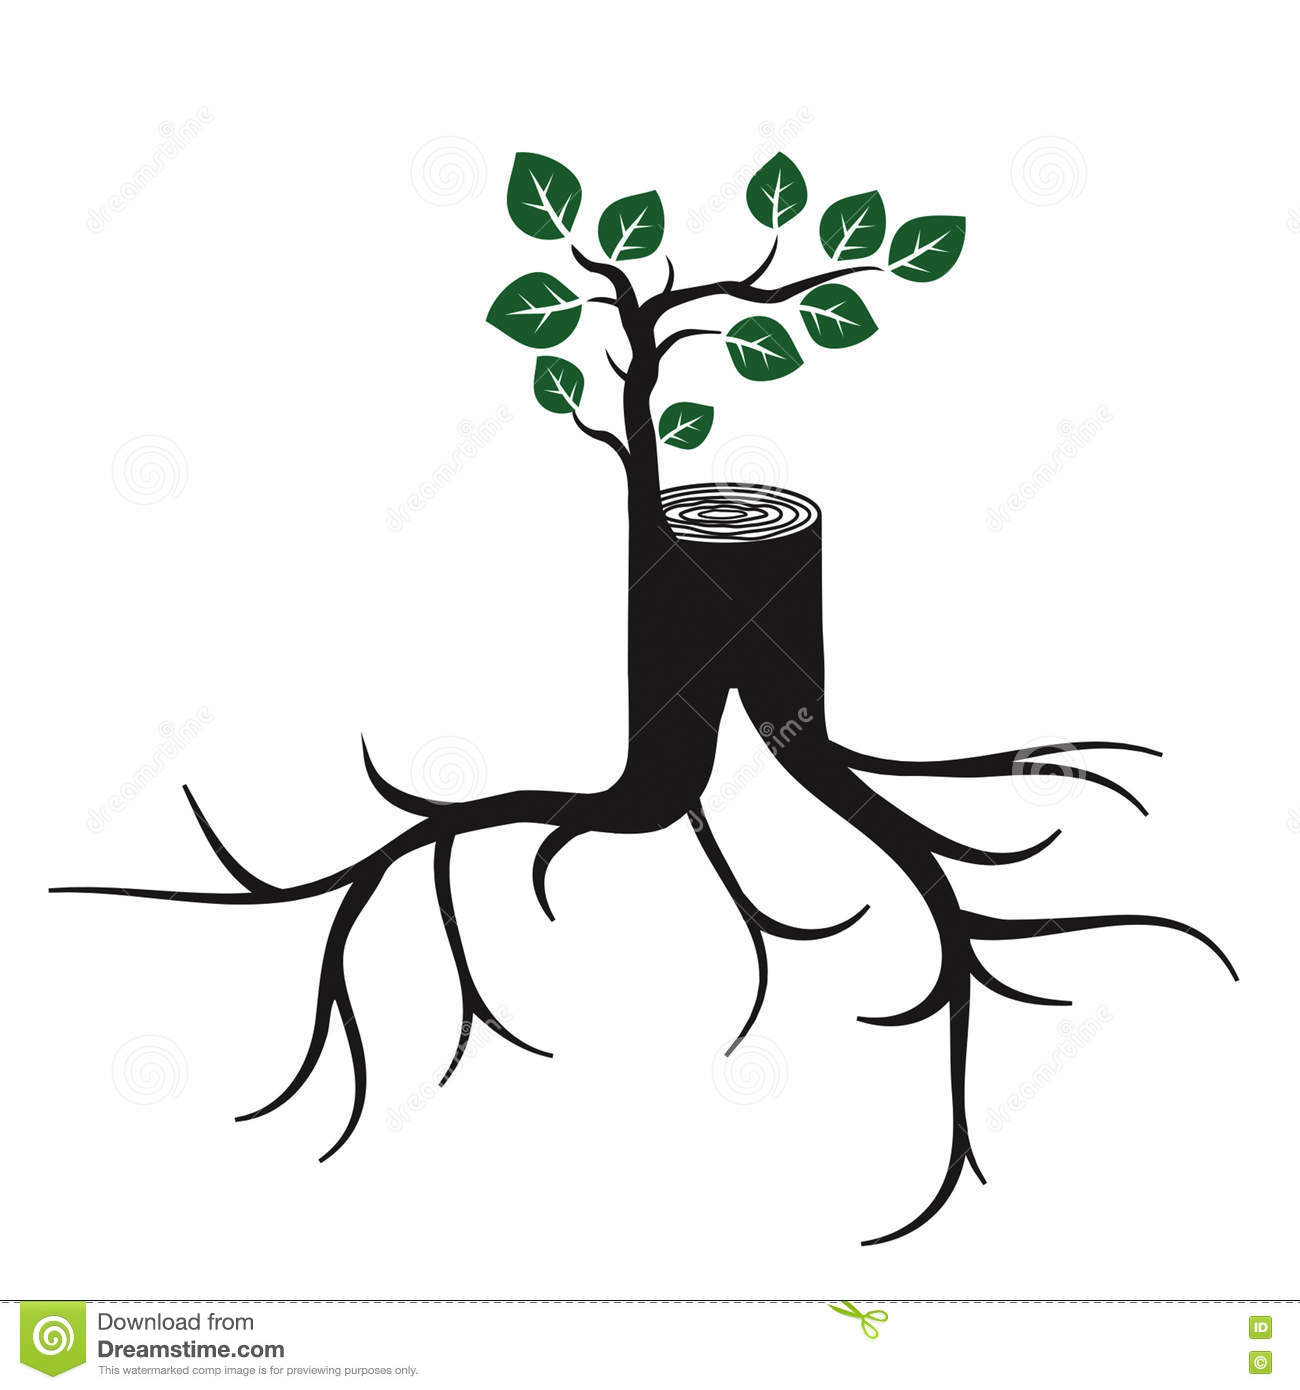 plant sprout cartoon